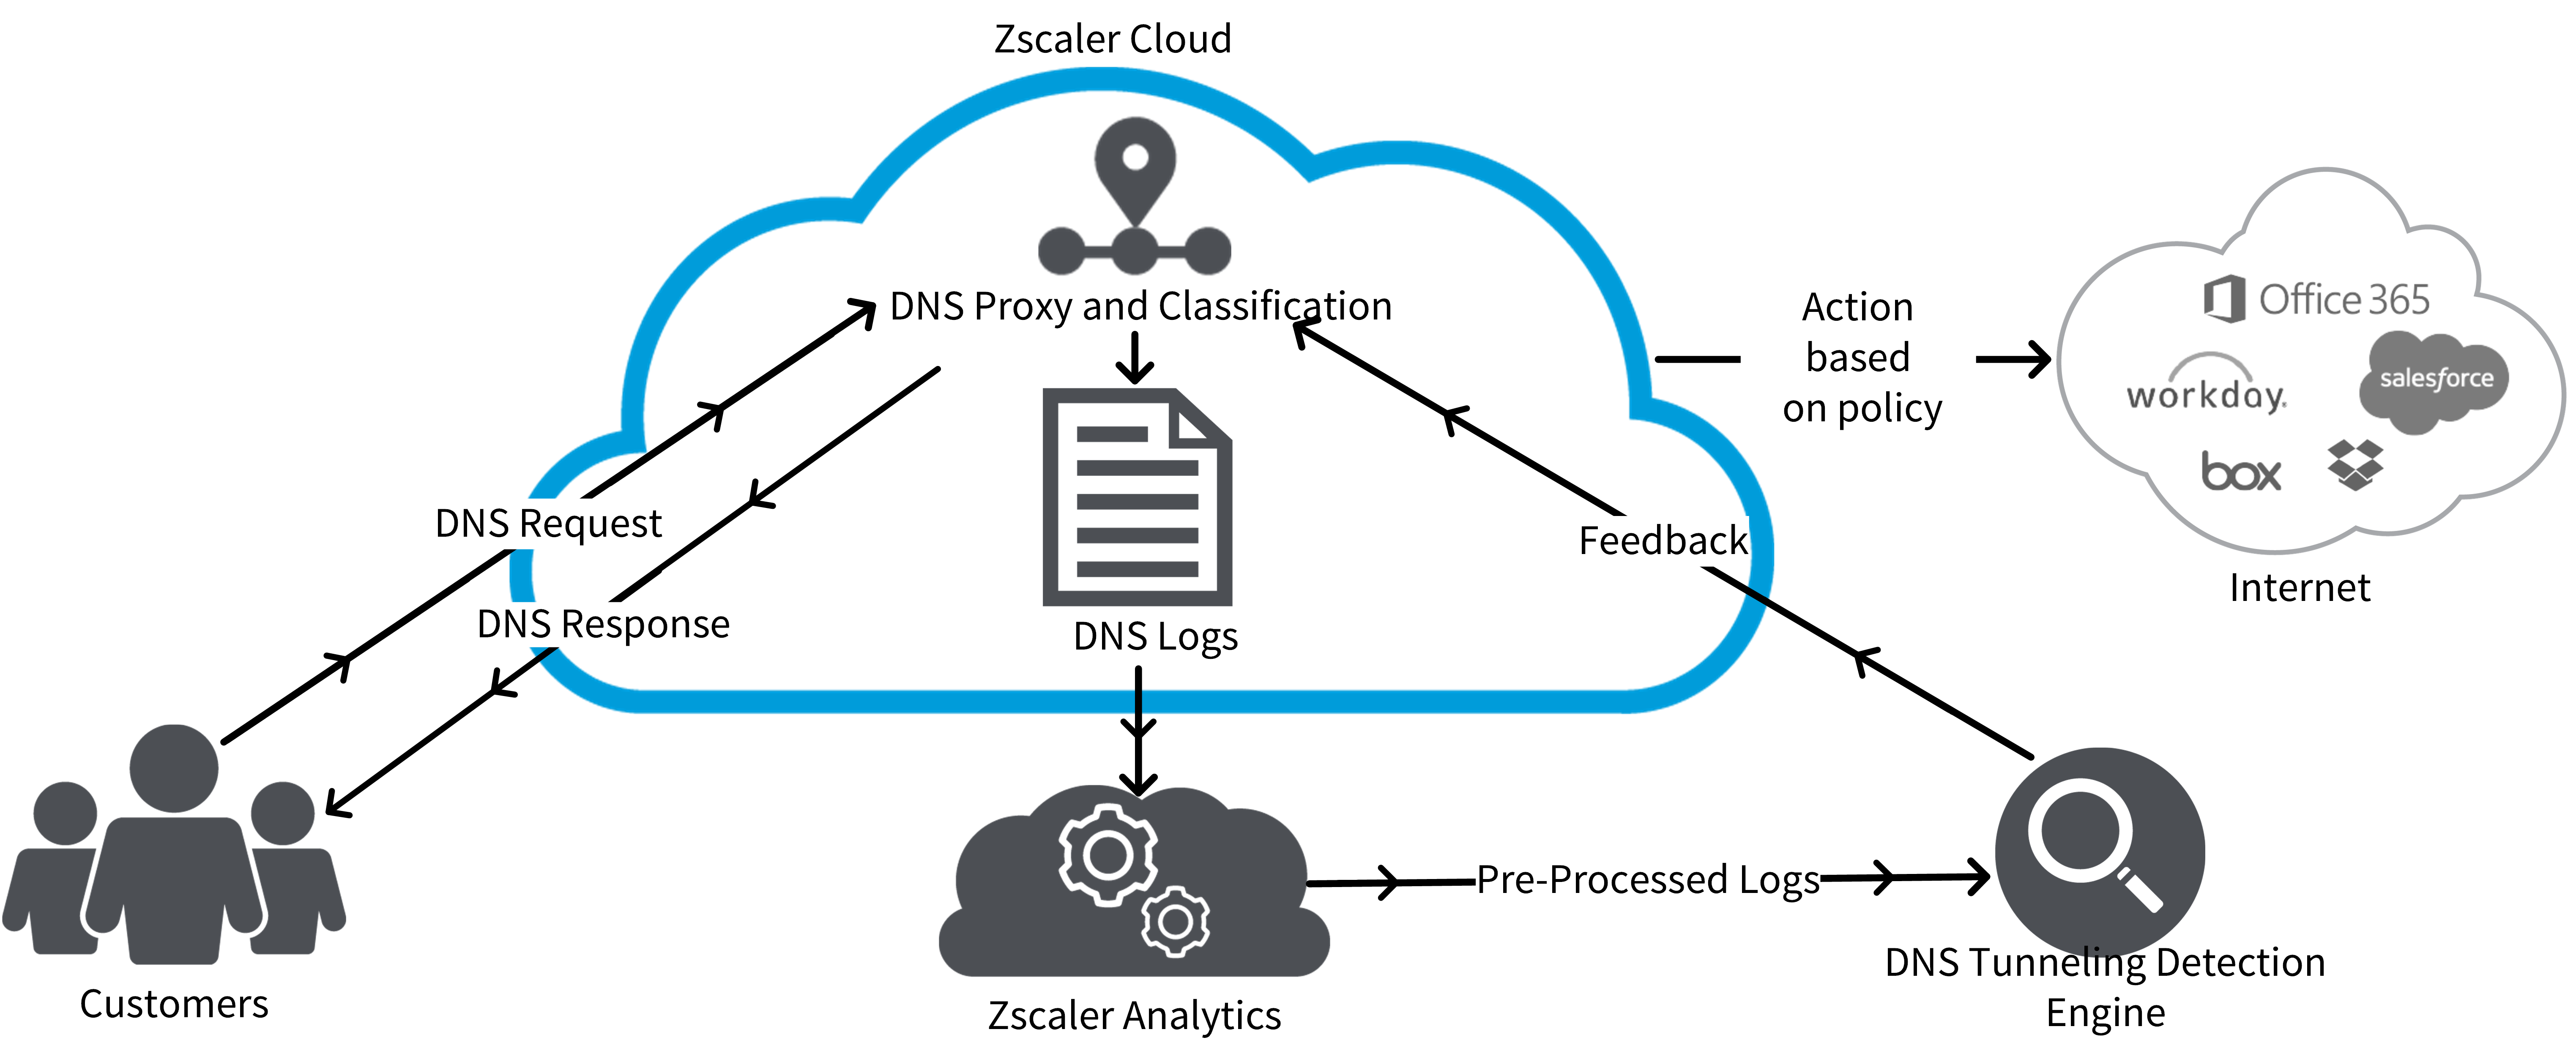 Diagram explaining how Zscaler tunneling detection